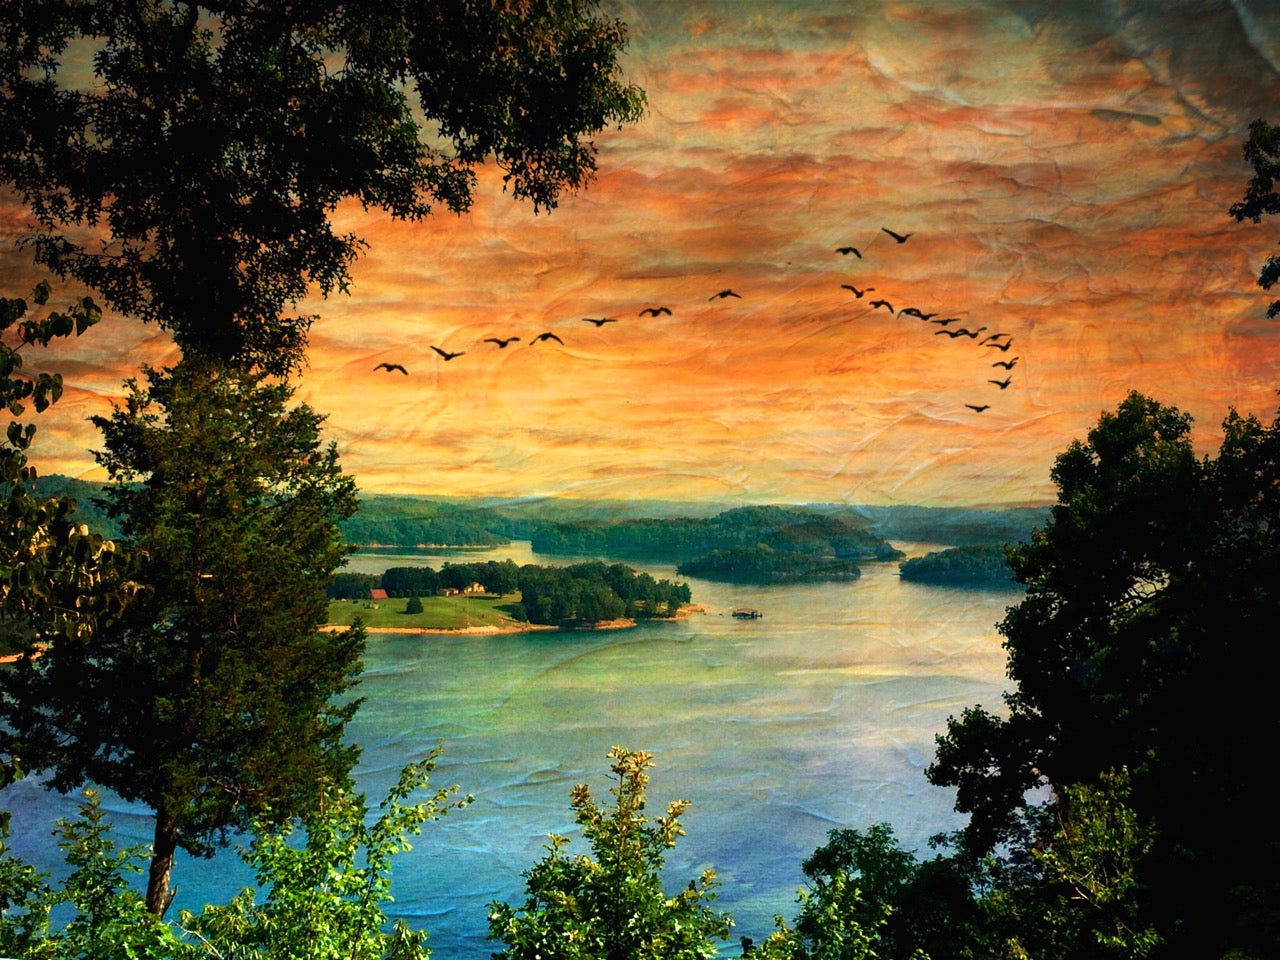 Sunset at Dale Hollow by Mary Clare O'Neal